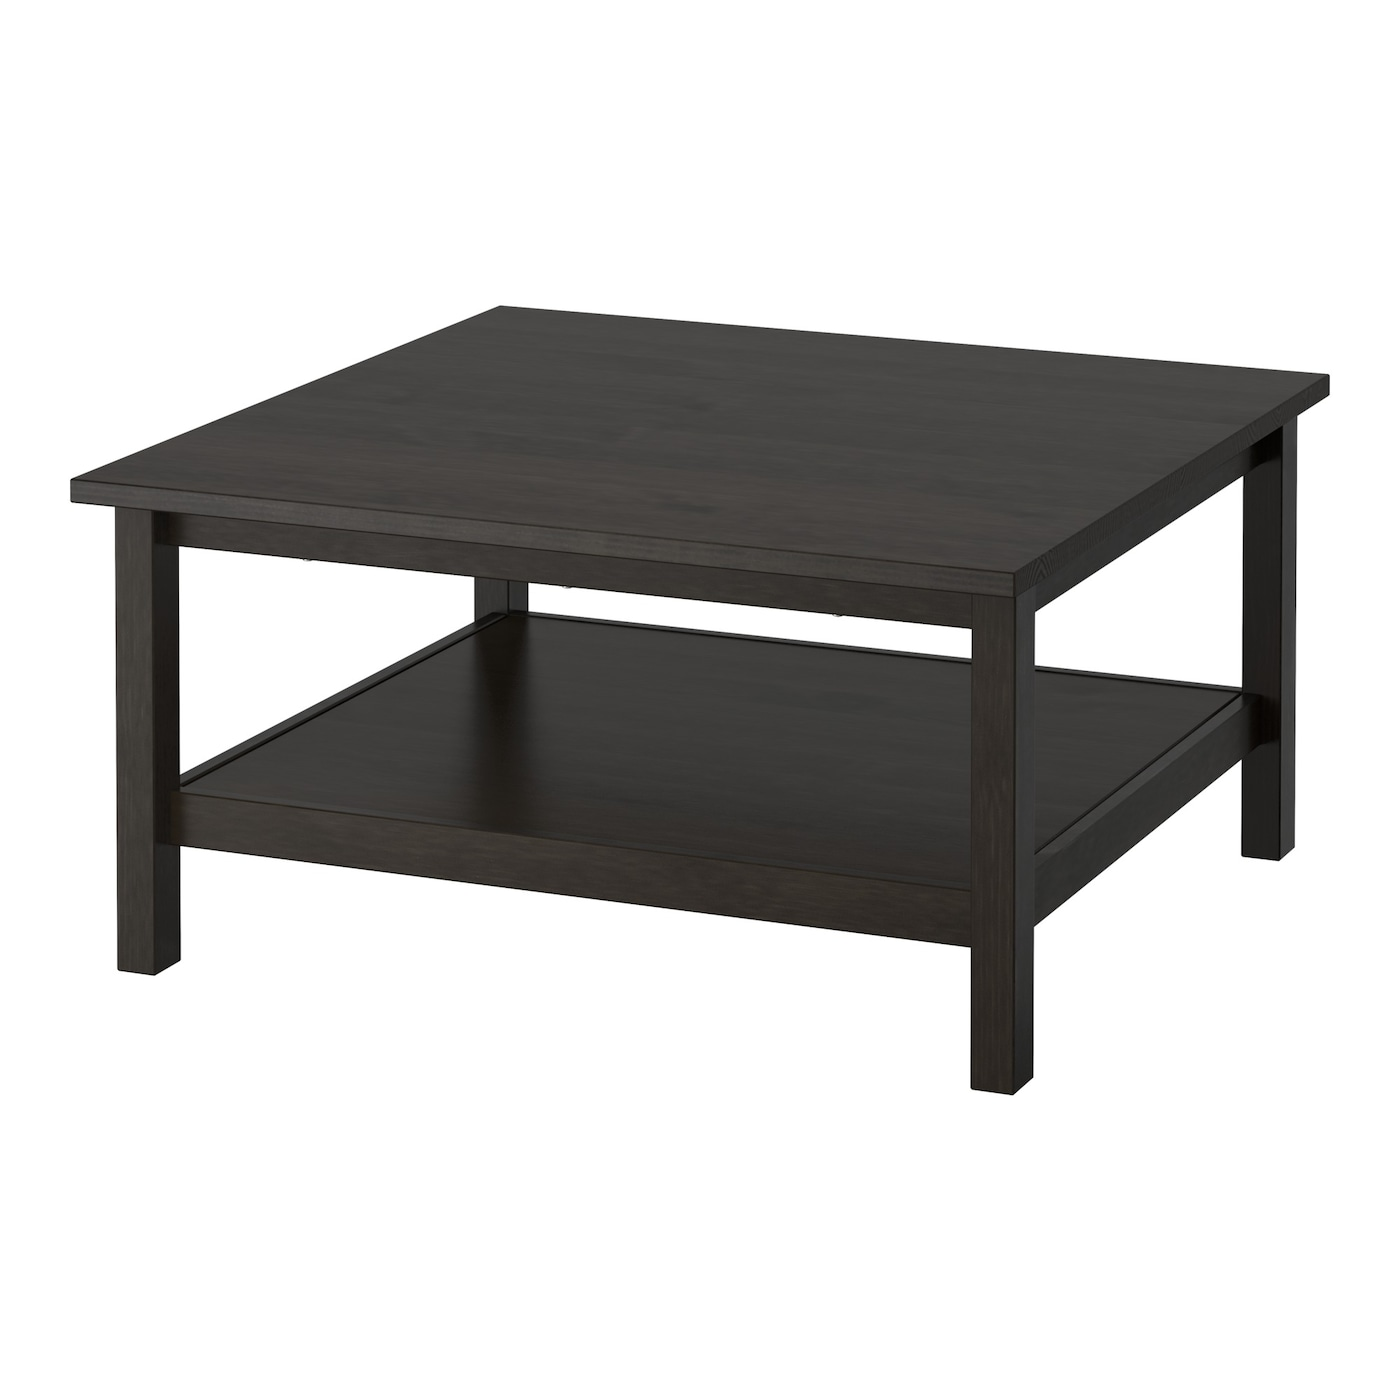 HEMNES Coffee table Black brown 90x90 cm IKEA